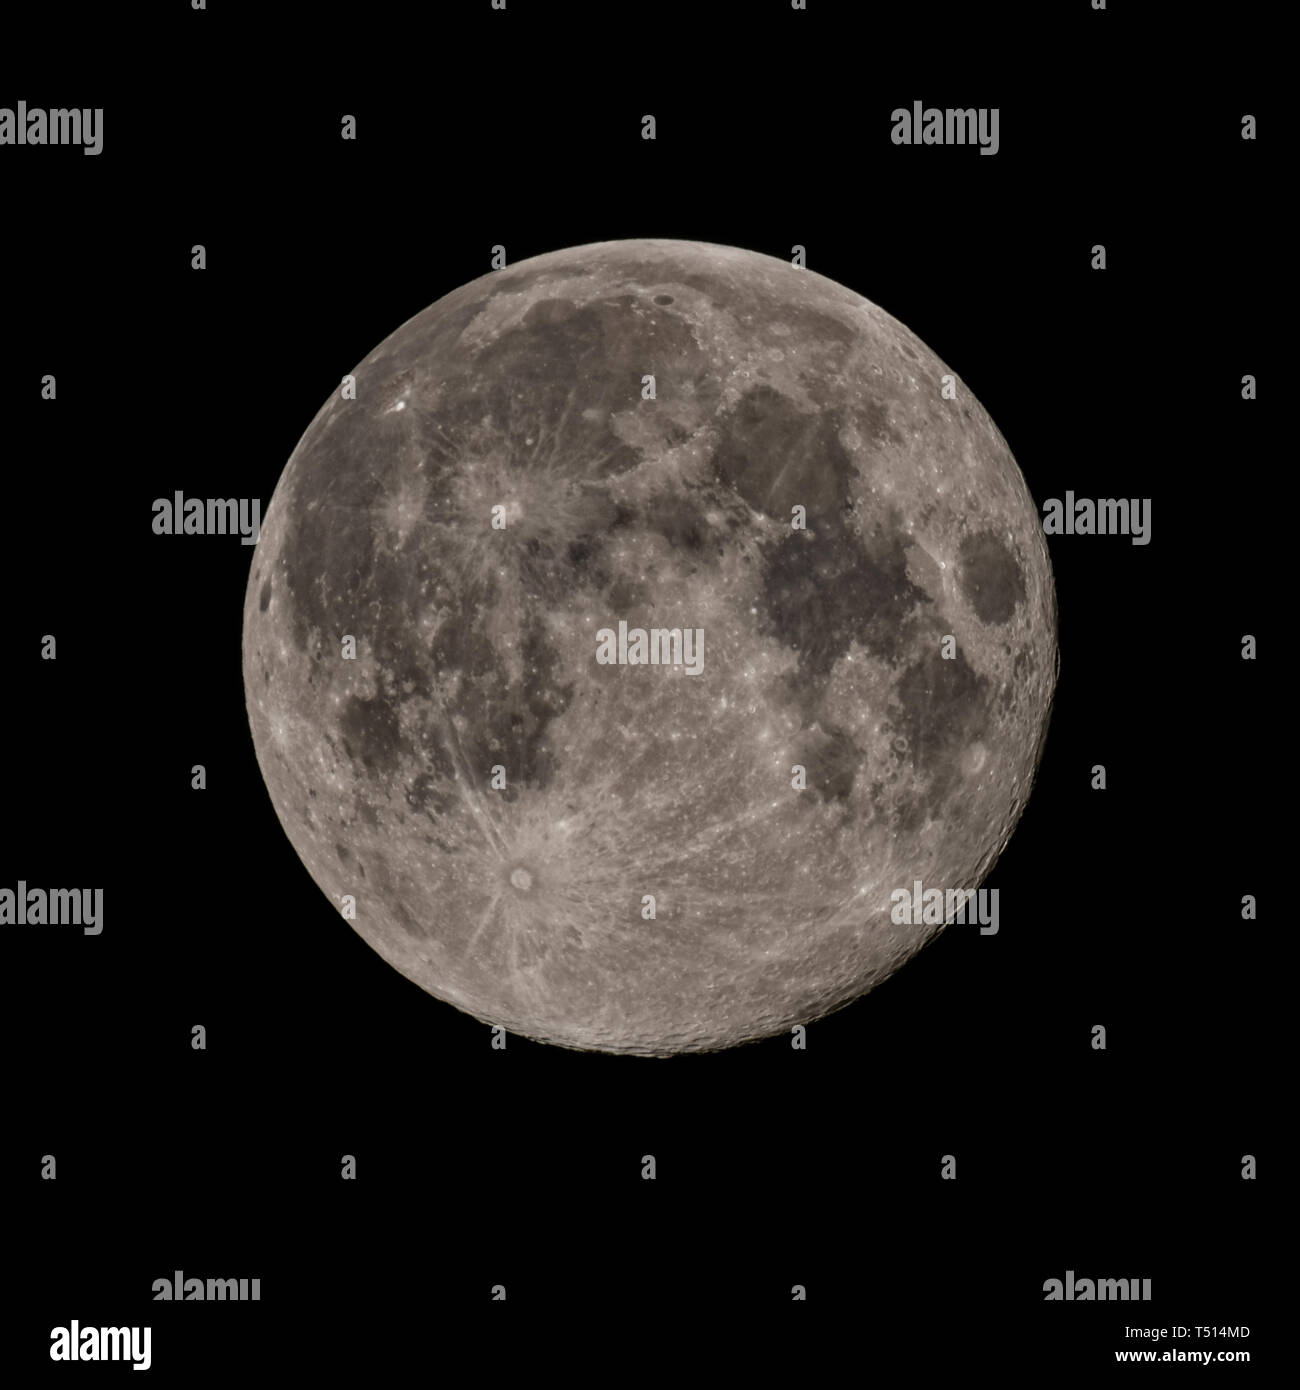 First Spring Full Moon, high resolution detailed image - Stock Image